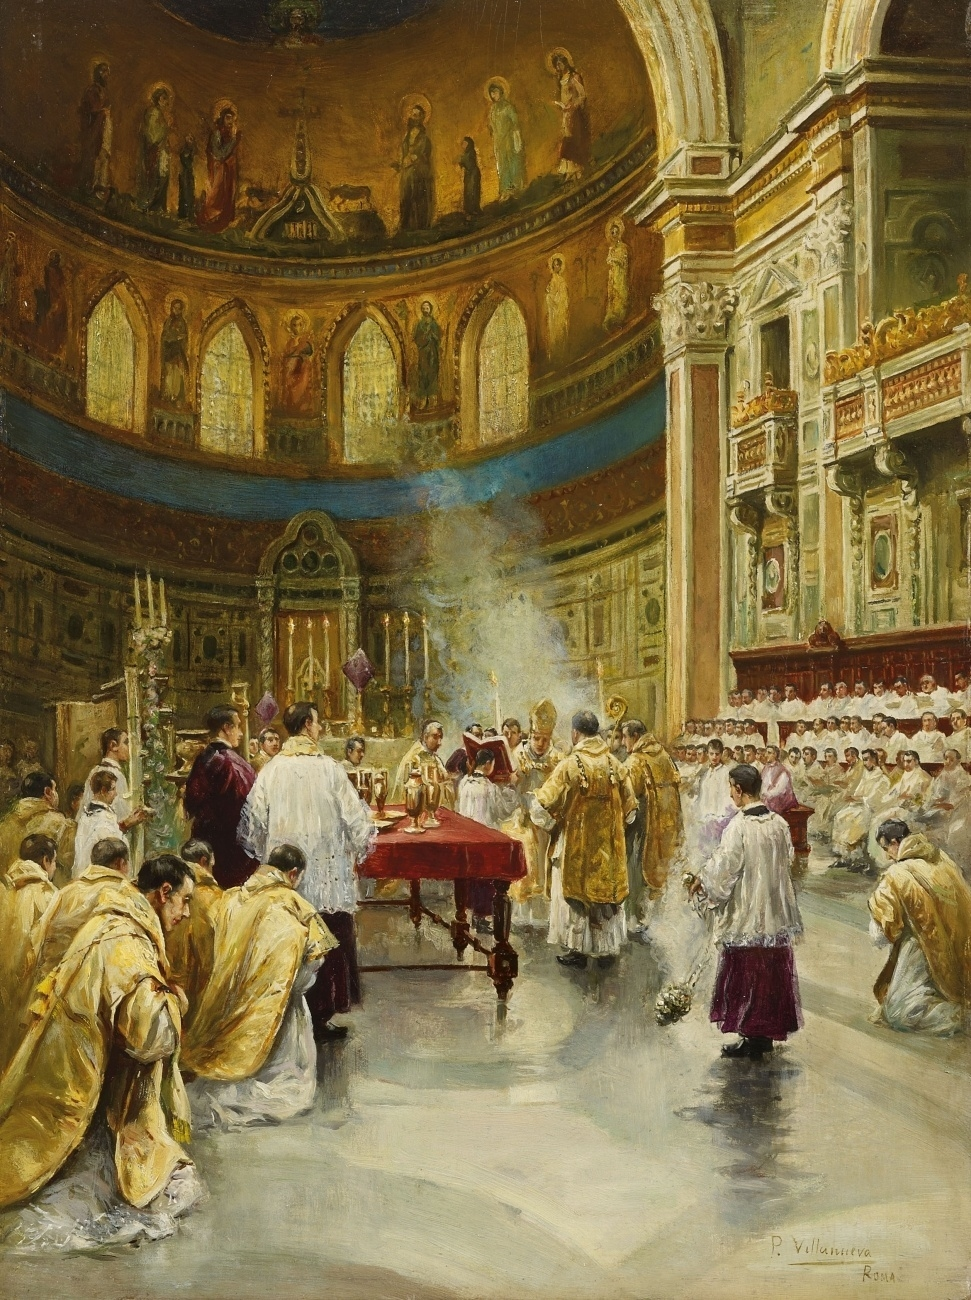 Chrism Mass - Wikipedia